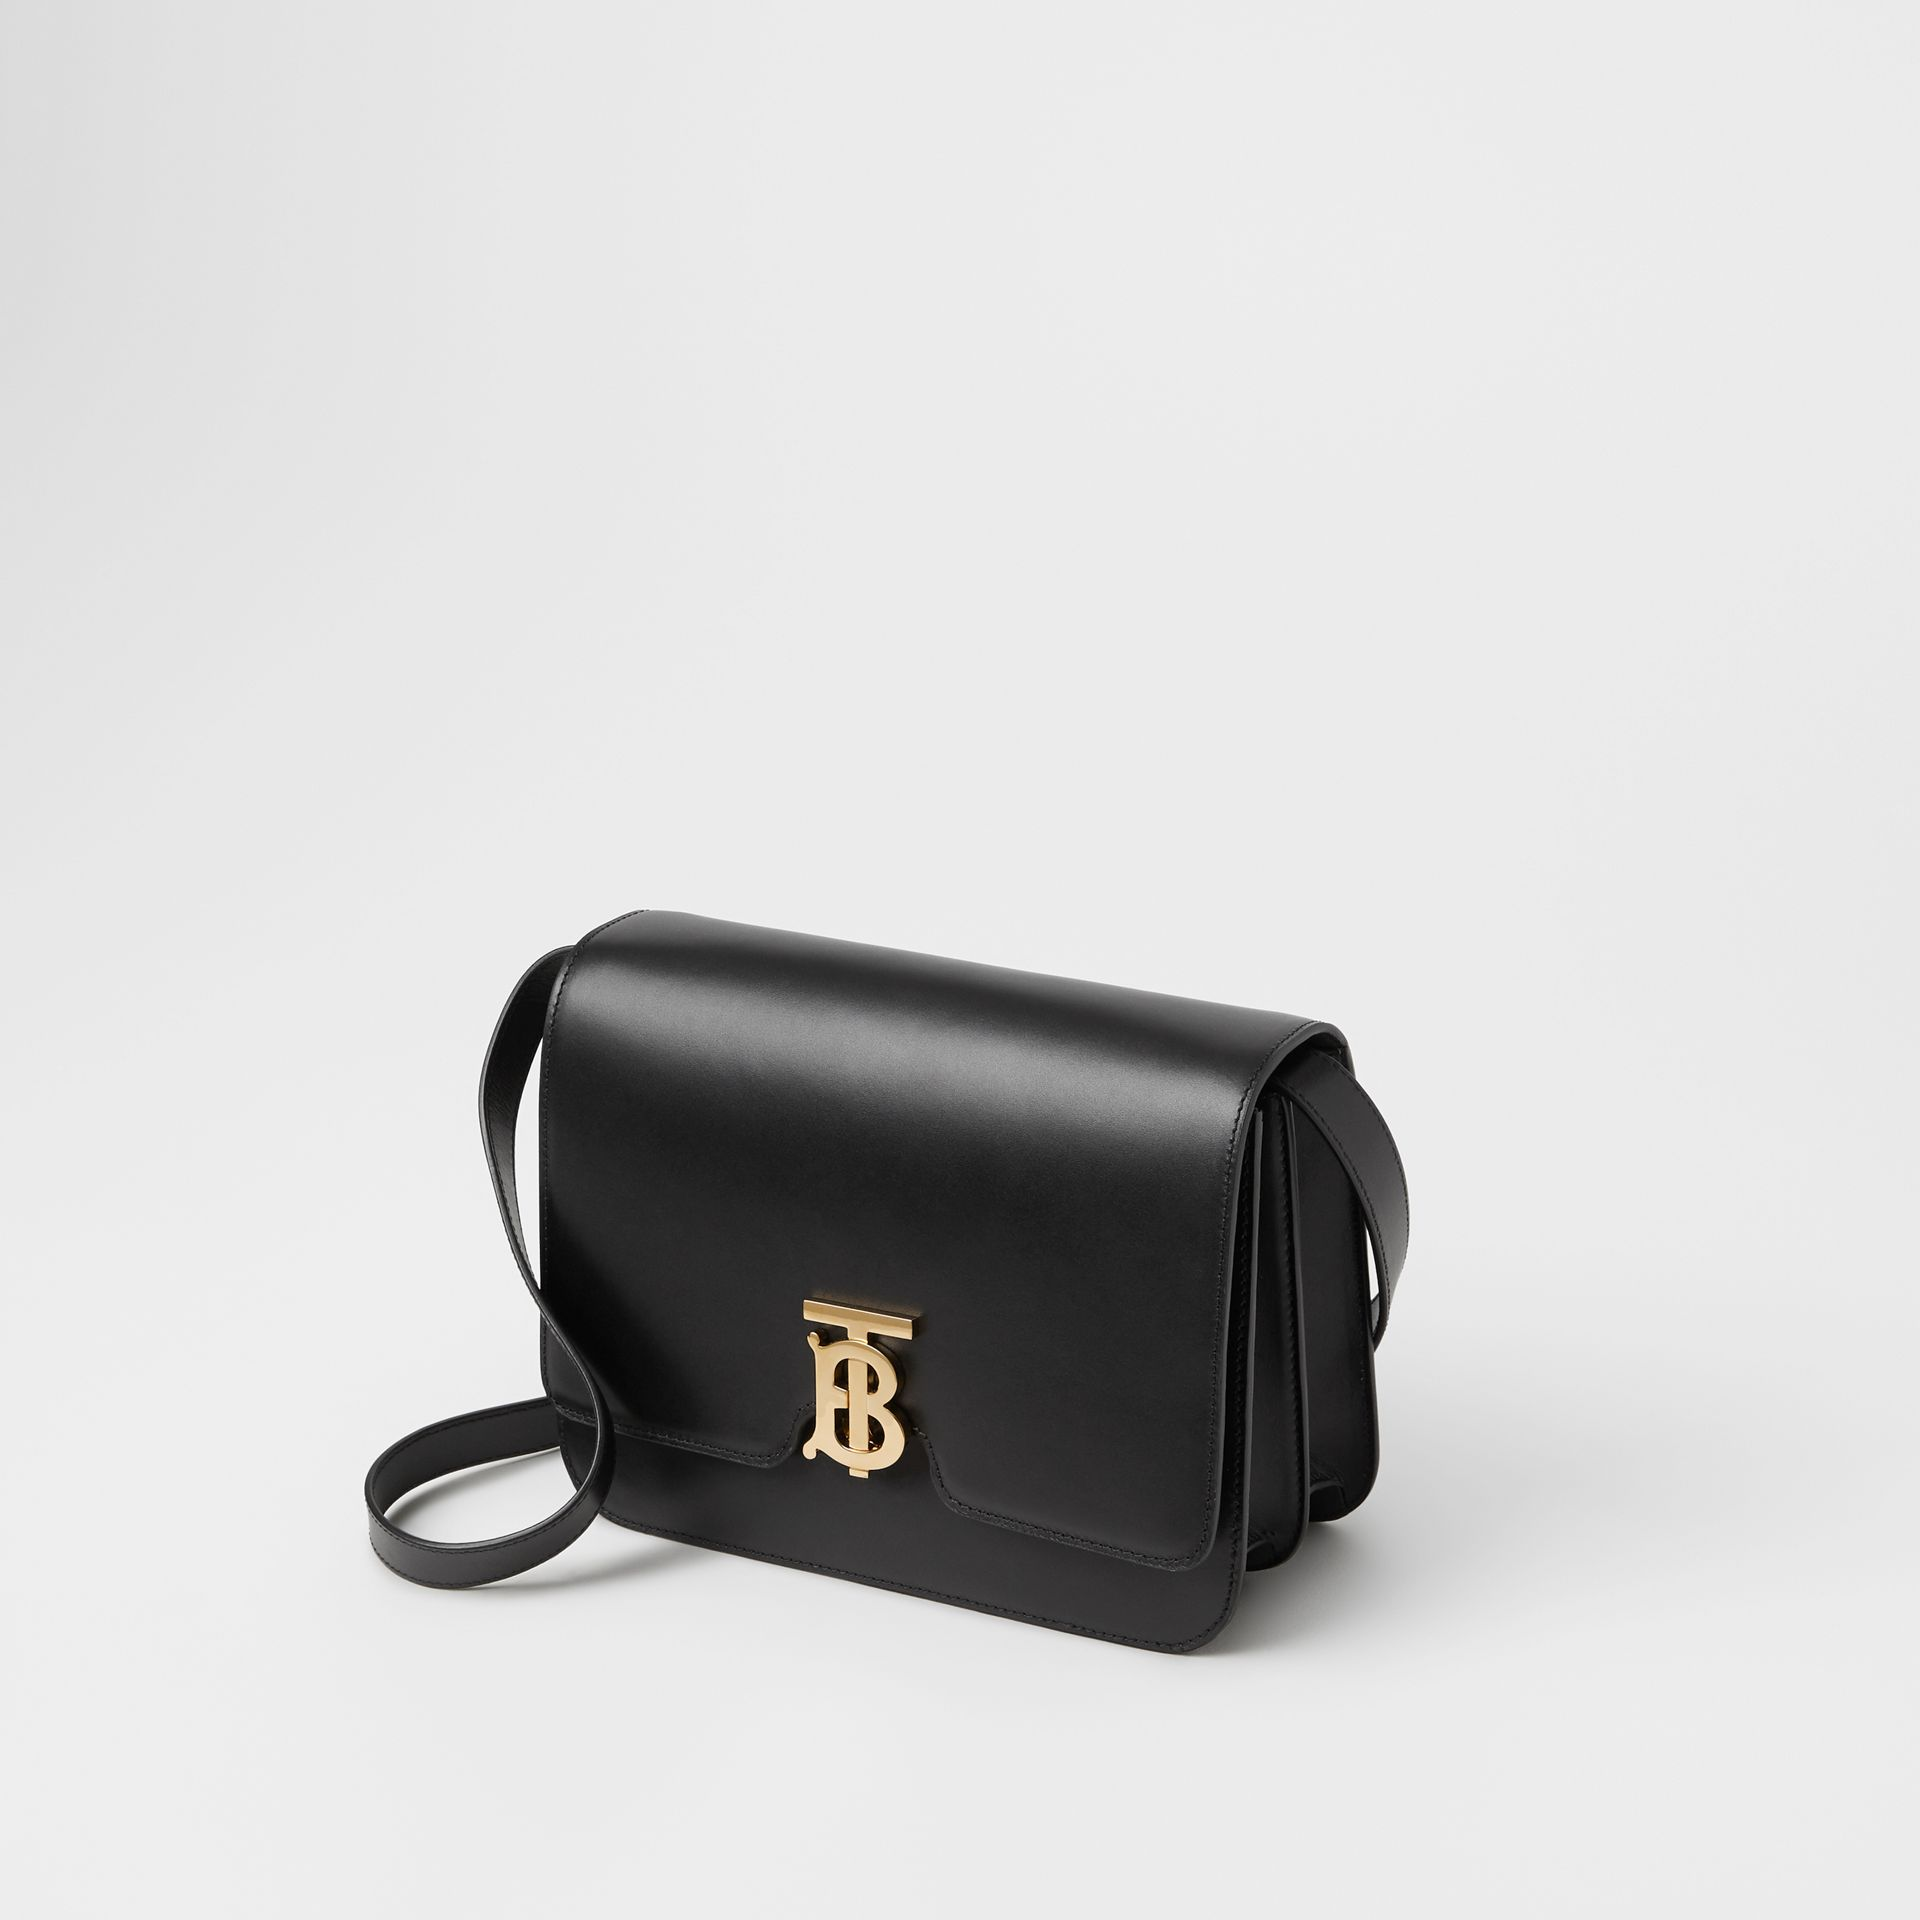 Leather TB Bag in Black - Women | Burberry - gallery image 4